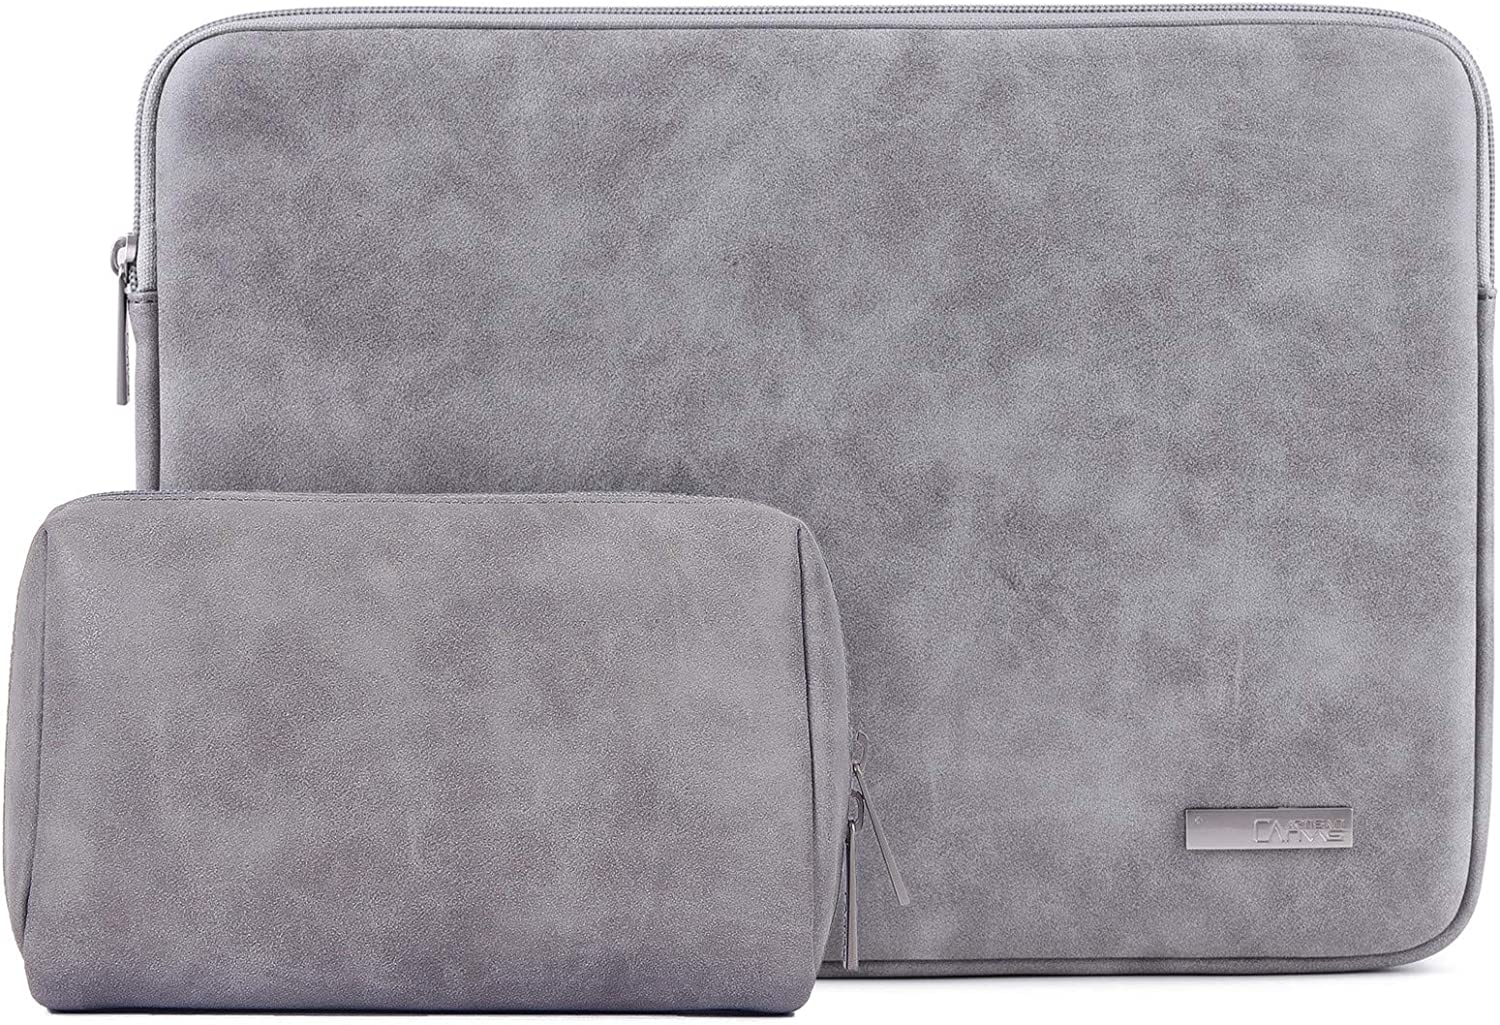 PU Leather Padded Laptop Bag HBLOOMYST 13 14 15 Inch Frosted Protective Notebook Sleeve Computer Case Cover